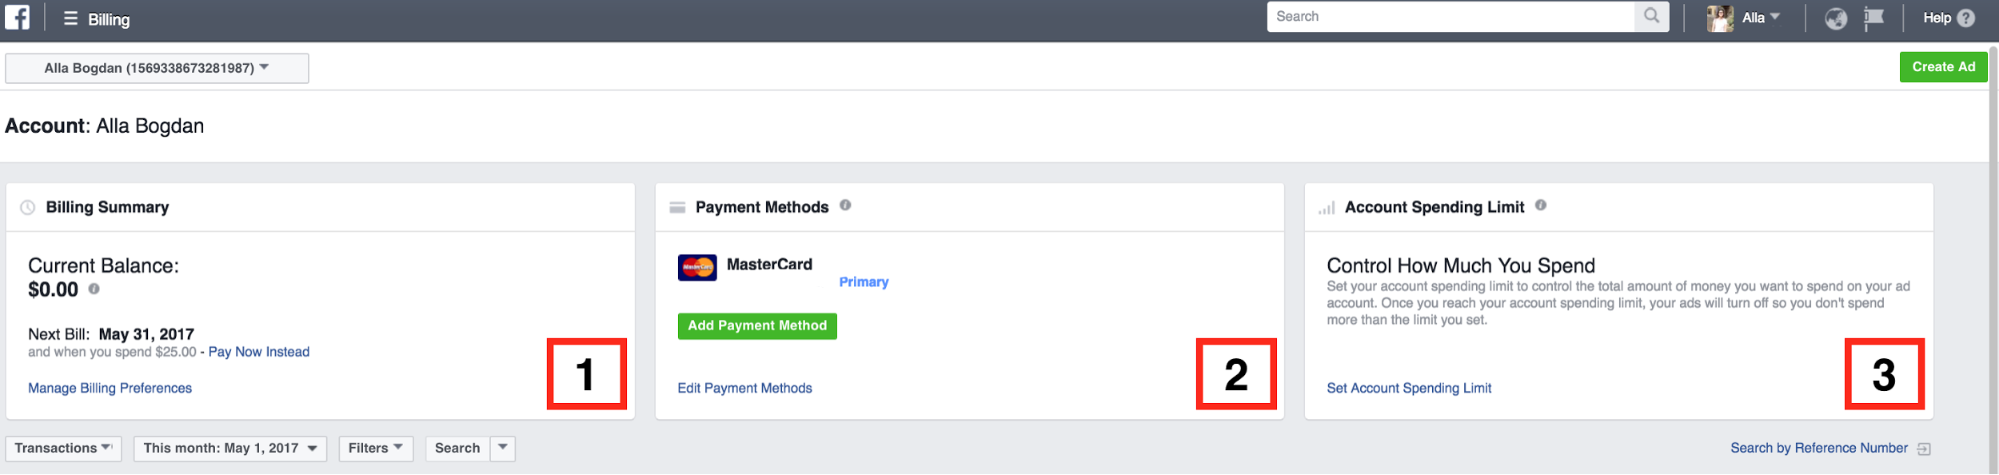 Facebook Ads billing and payment example